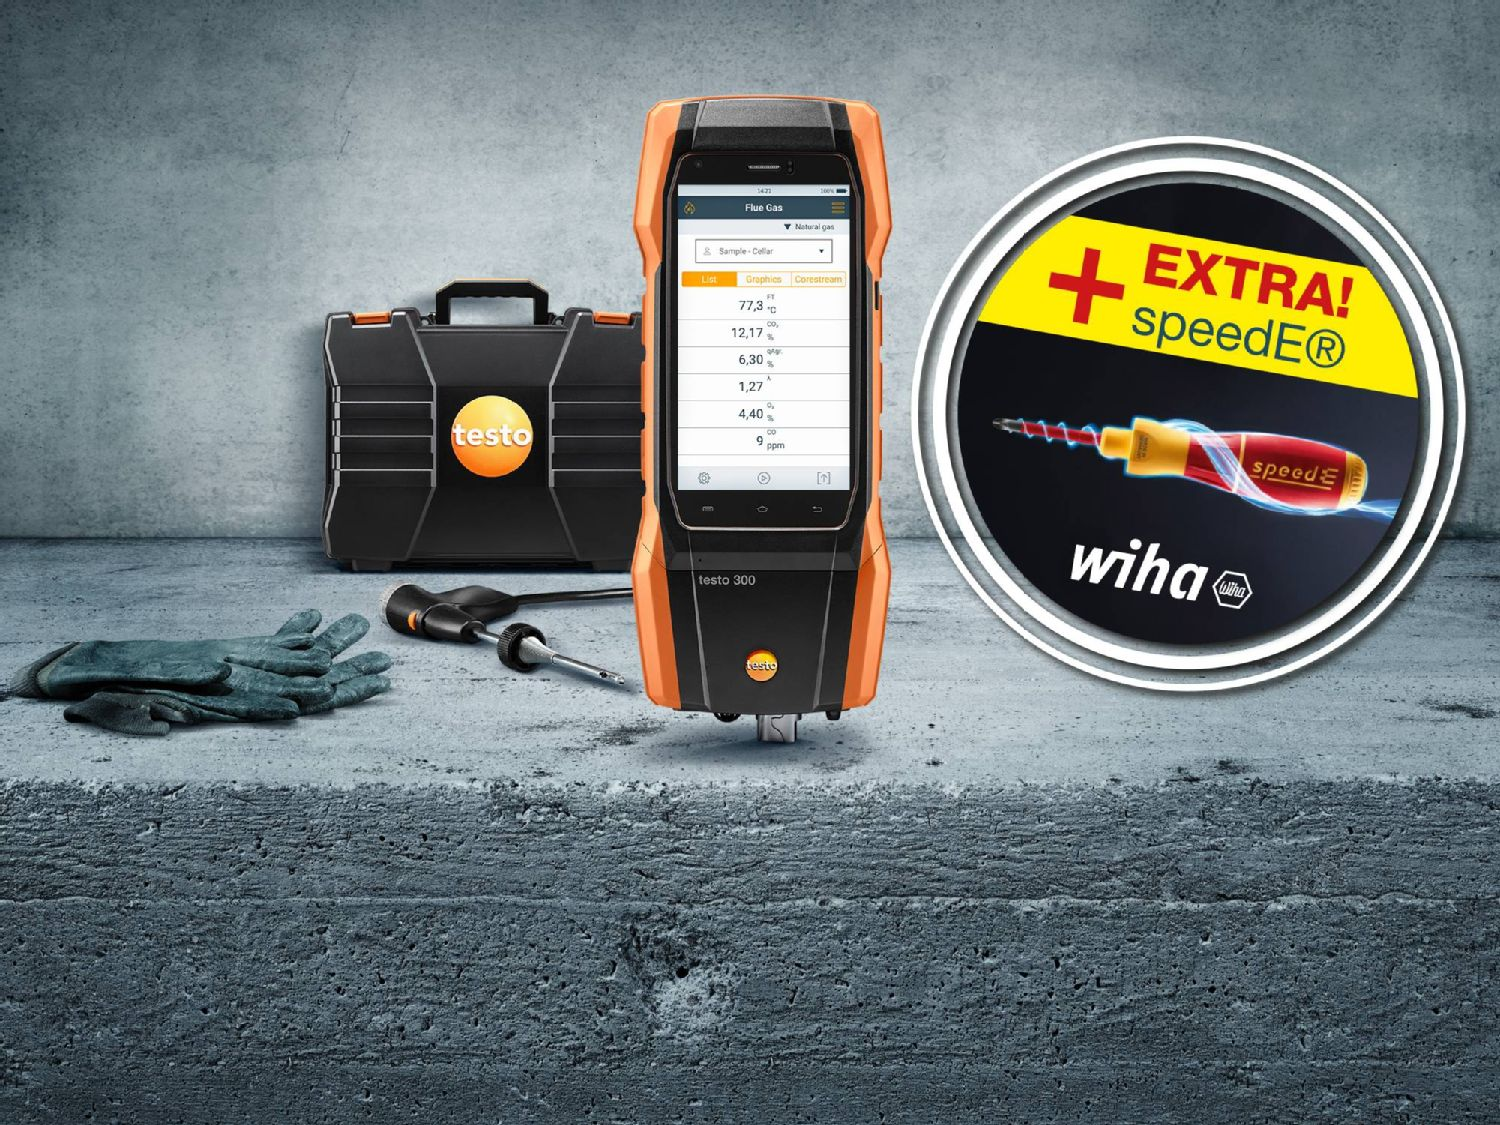 testo 300 promo kit and e-screwdriver set speedE® from Wiha